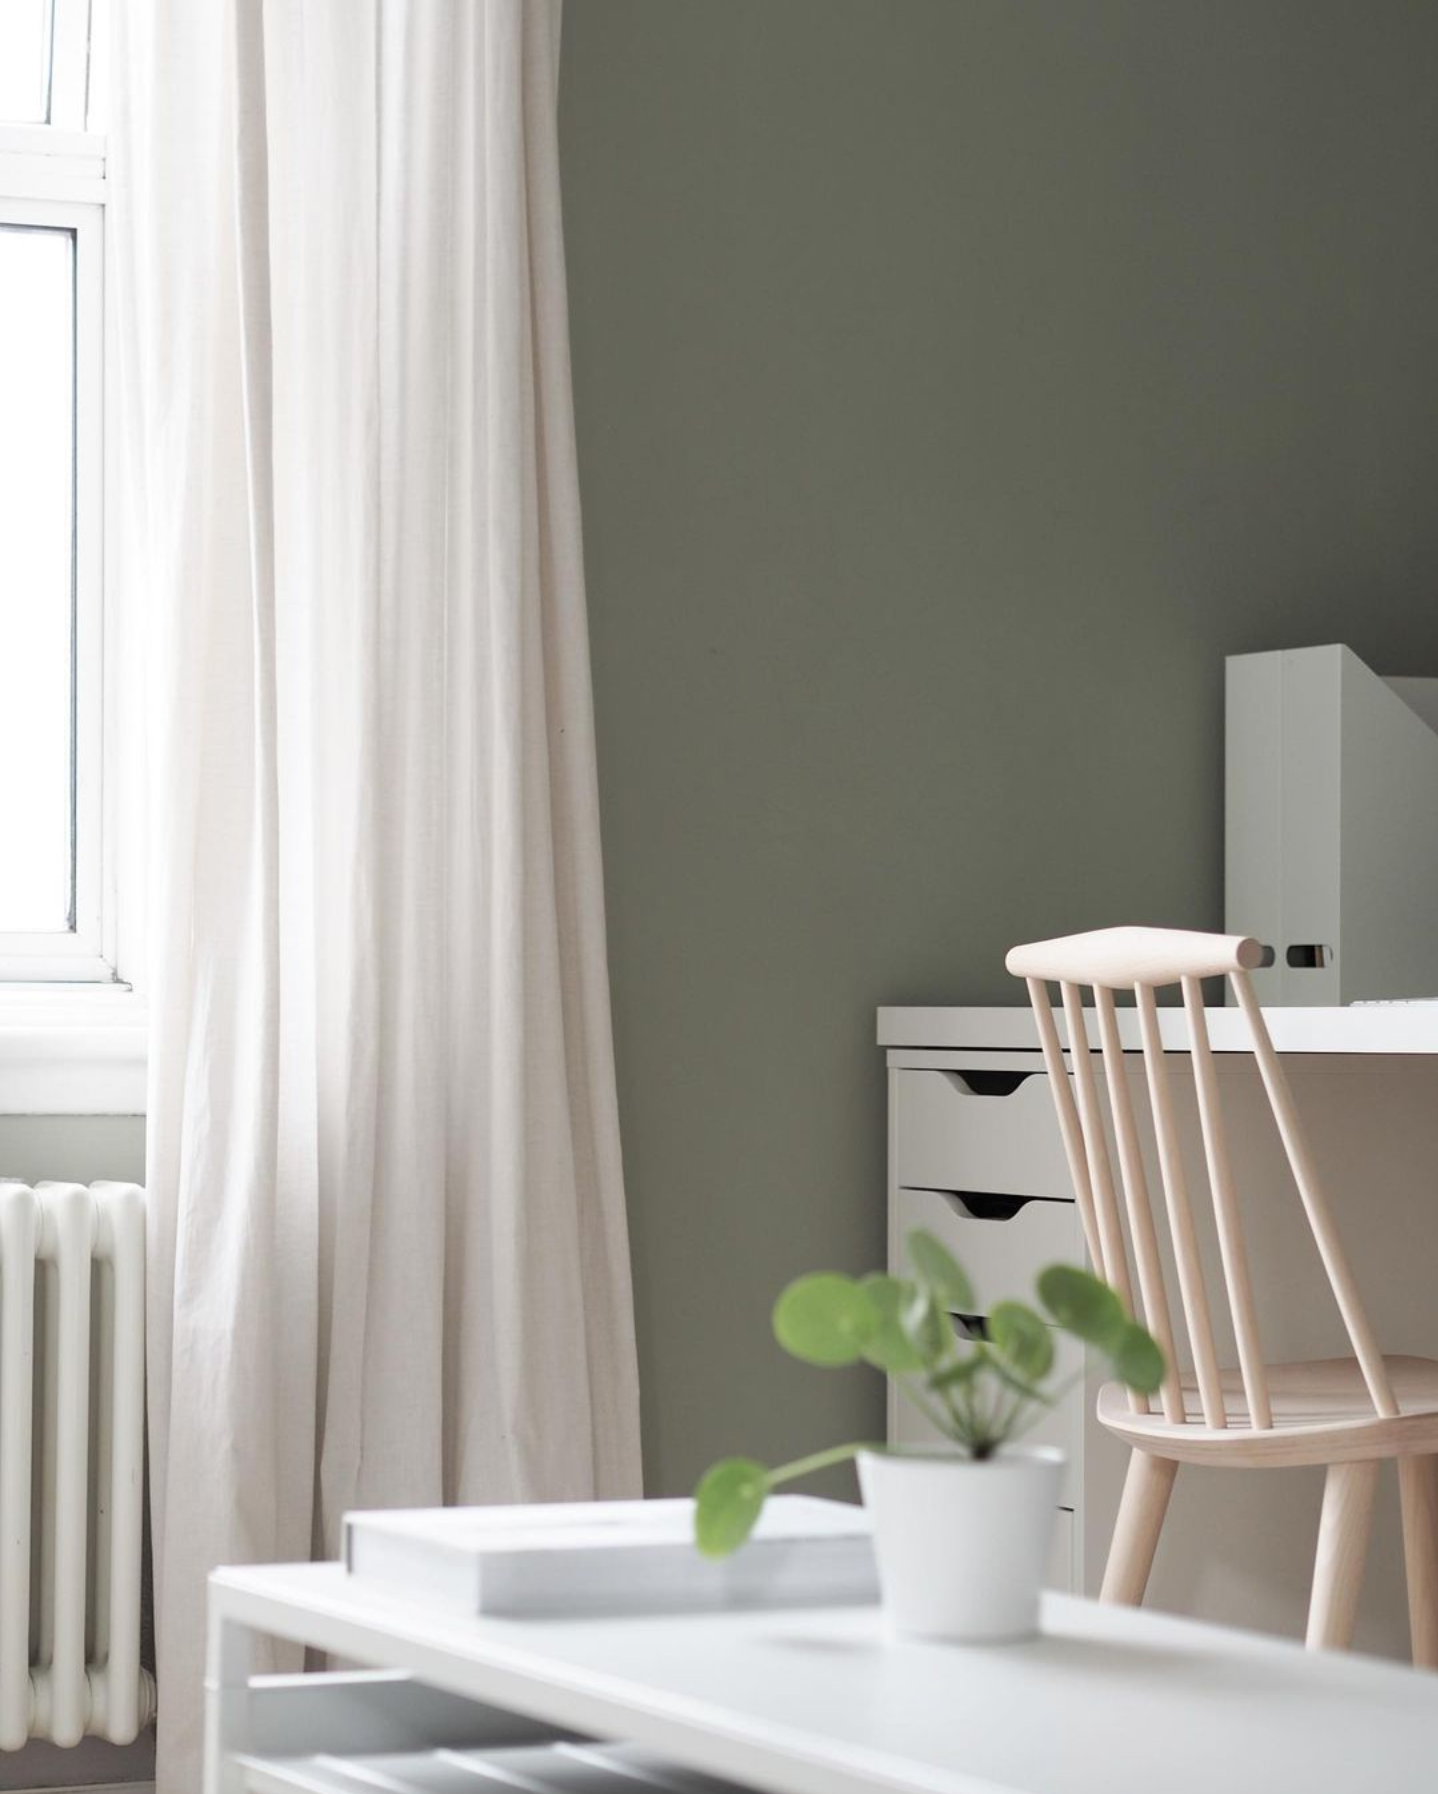 Image via @holly.beechener, feat. paint color 'Normandy Grey' from Little Greene Paint Company